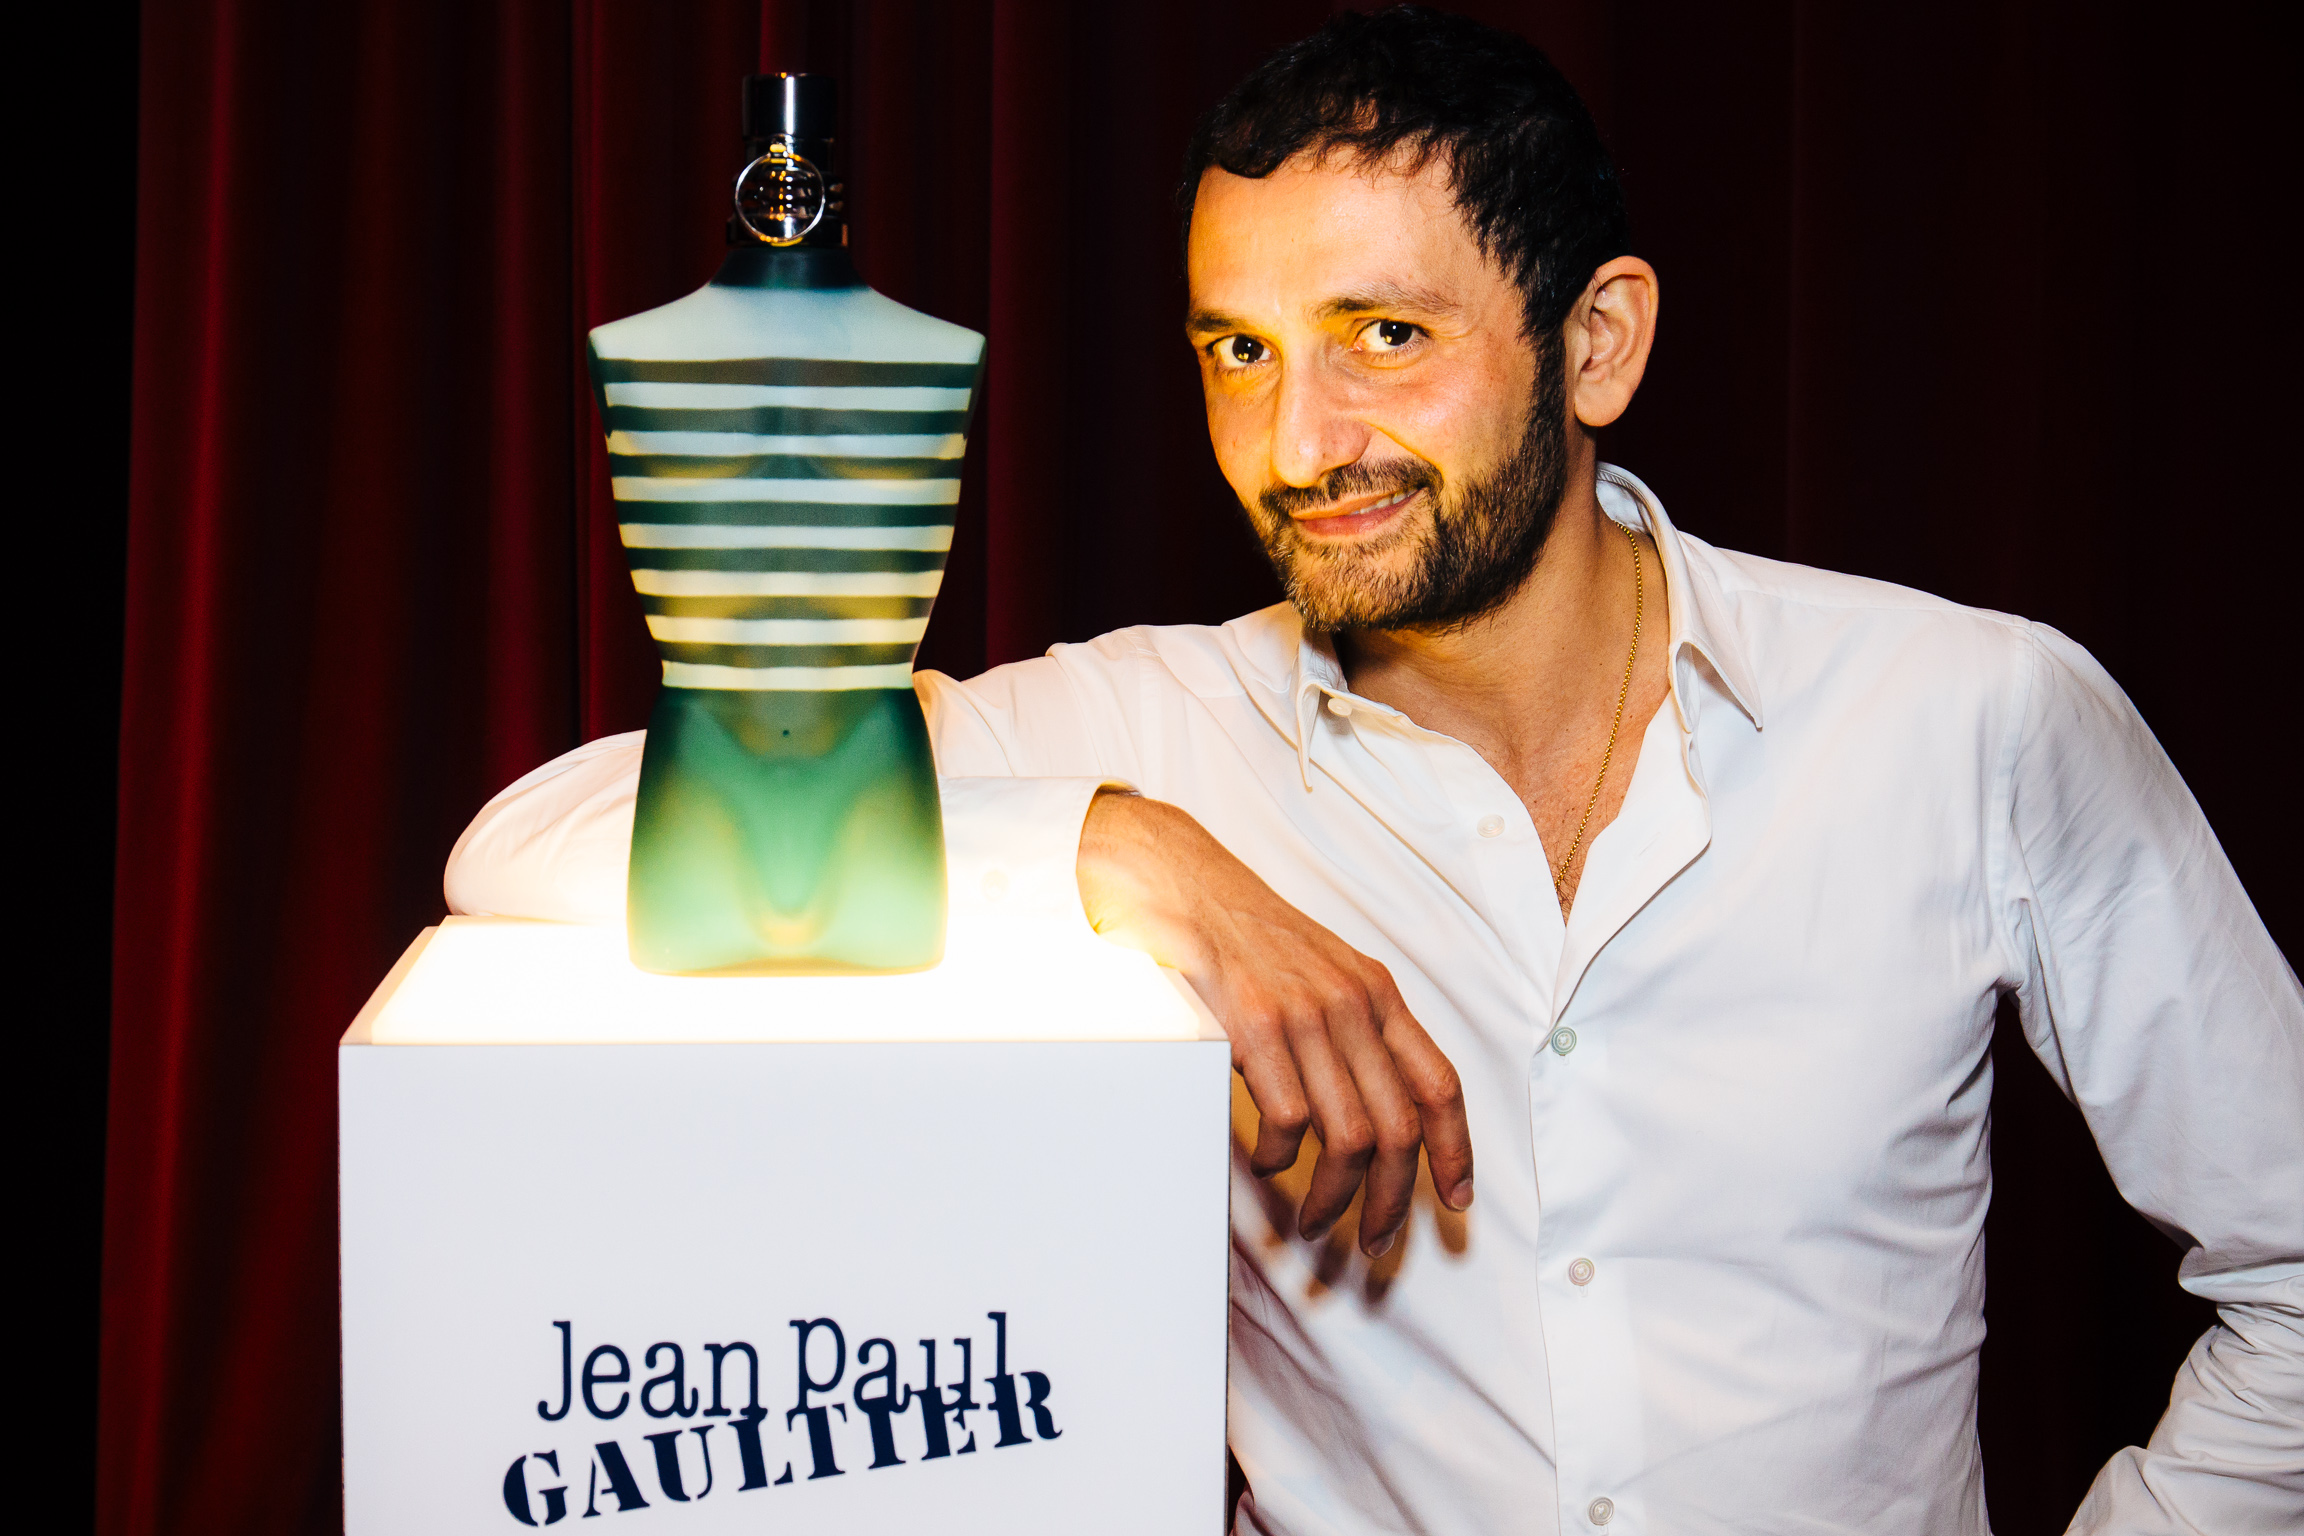 Fragrance symposium for Jean Paul Gaultier fragrances